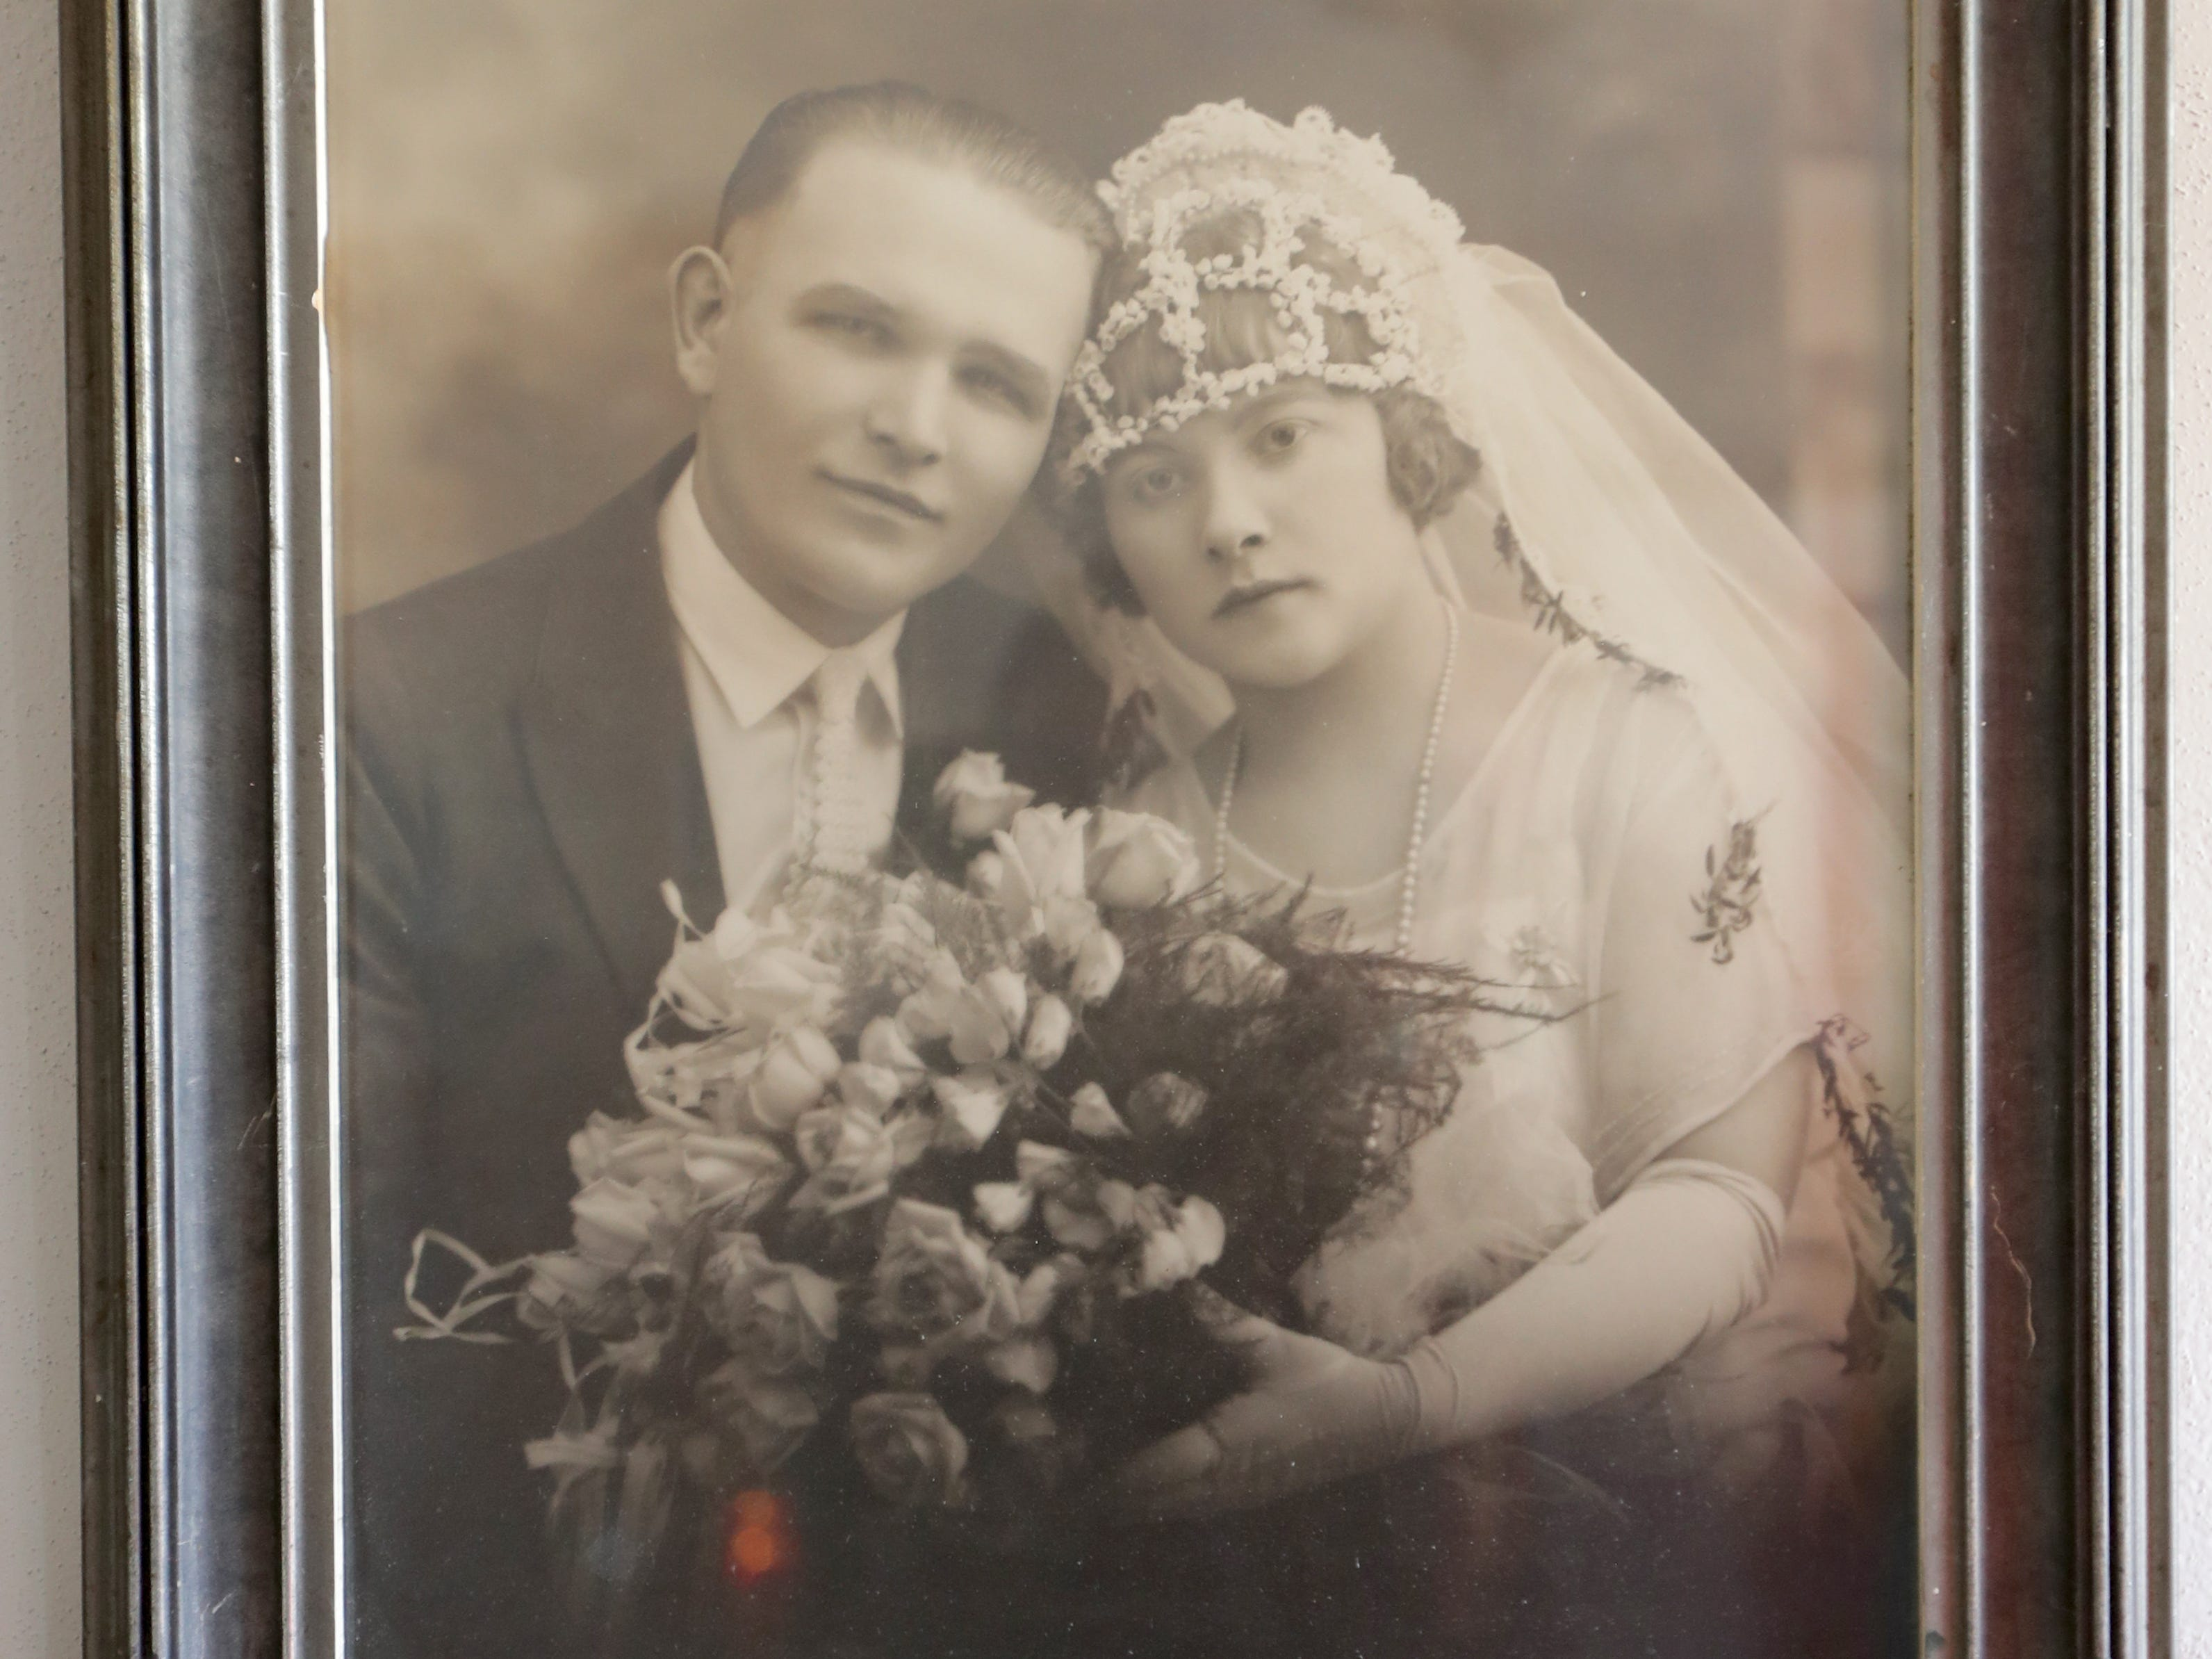 A photo on Kim Harrison's wall shows her grandmother and grandfather on their wedding day in 1925.  Harrison inherited some antique bell Christmas ornaments from her grandmother.